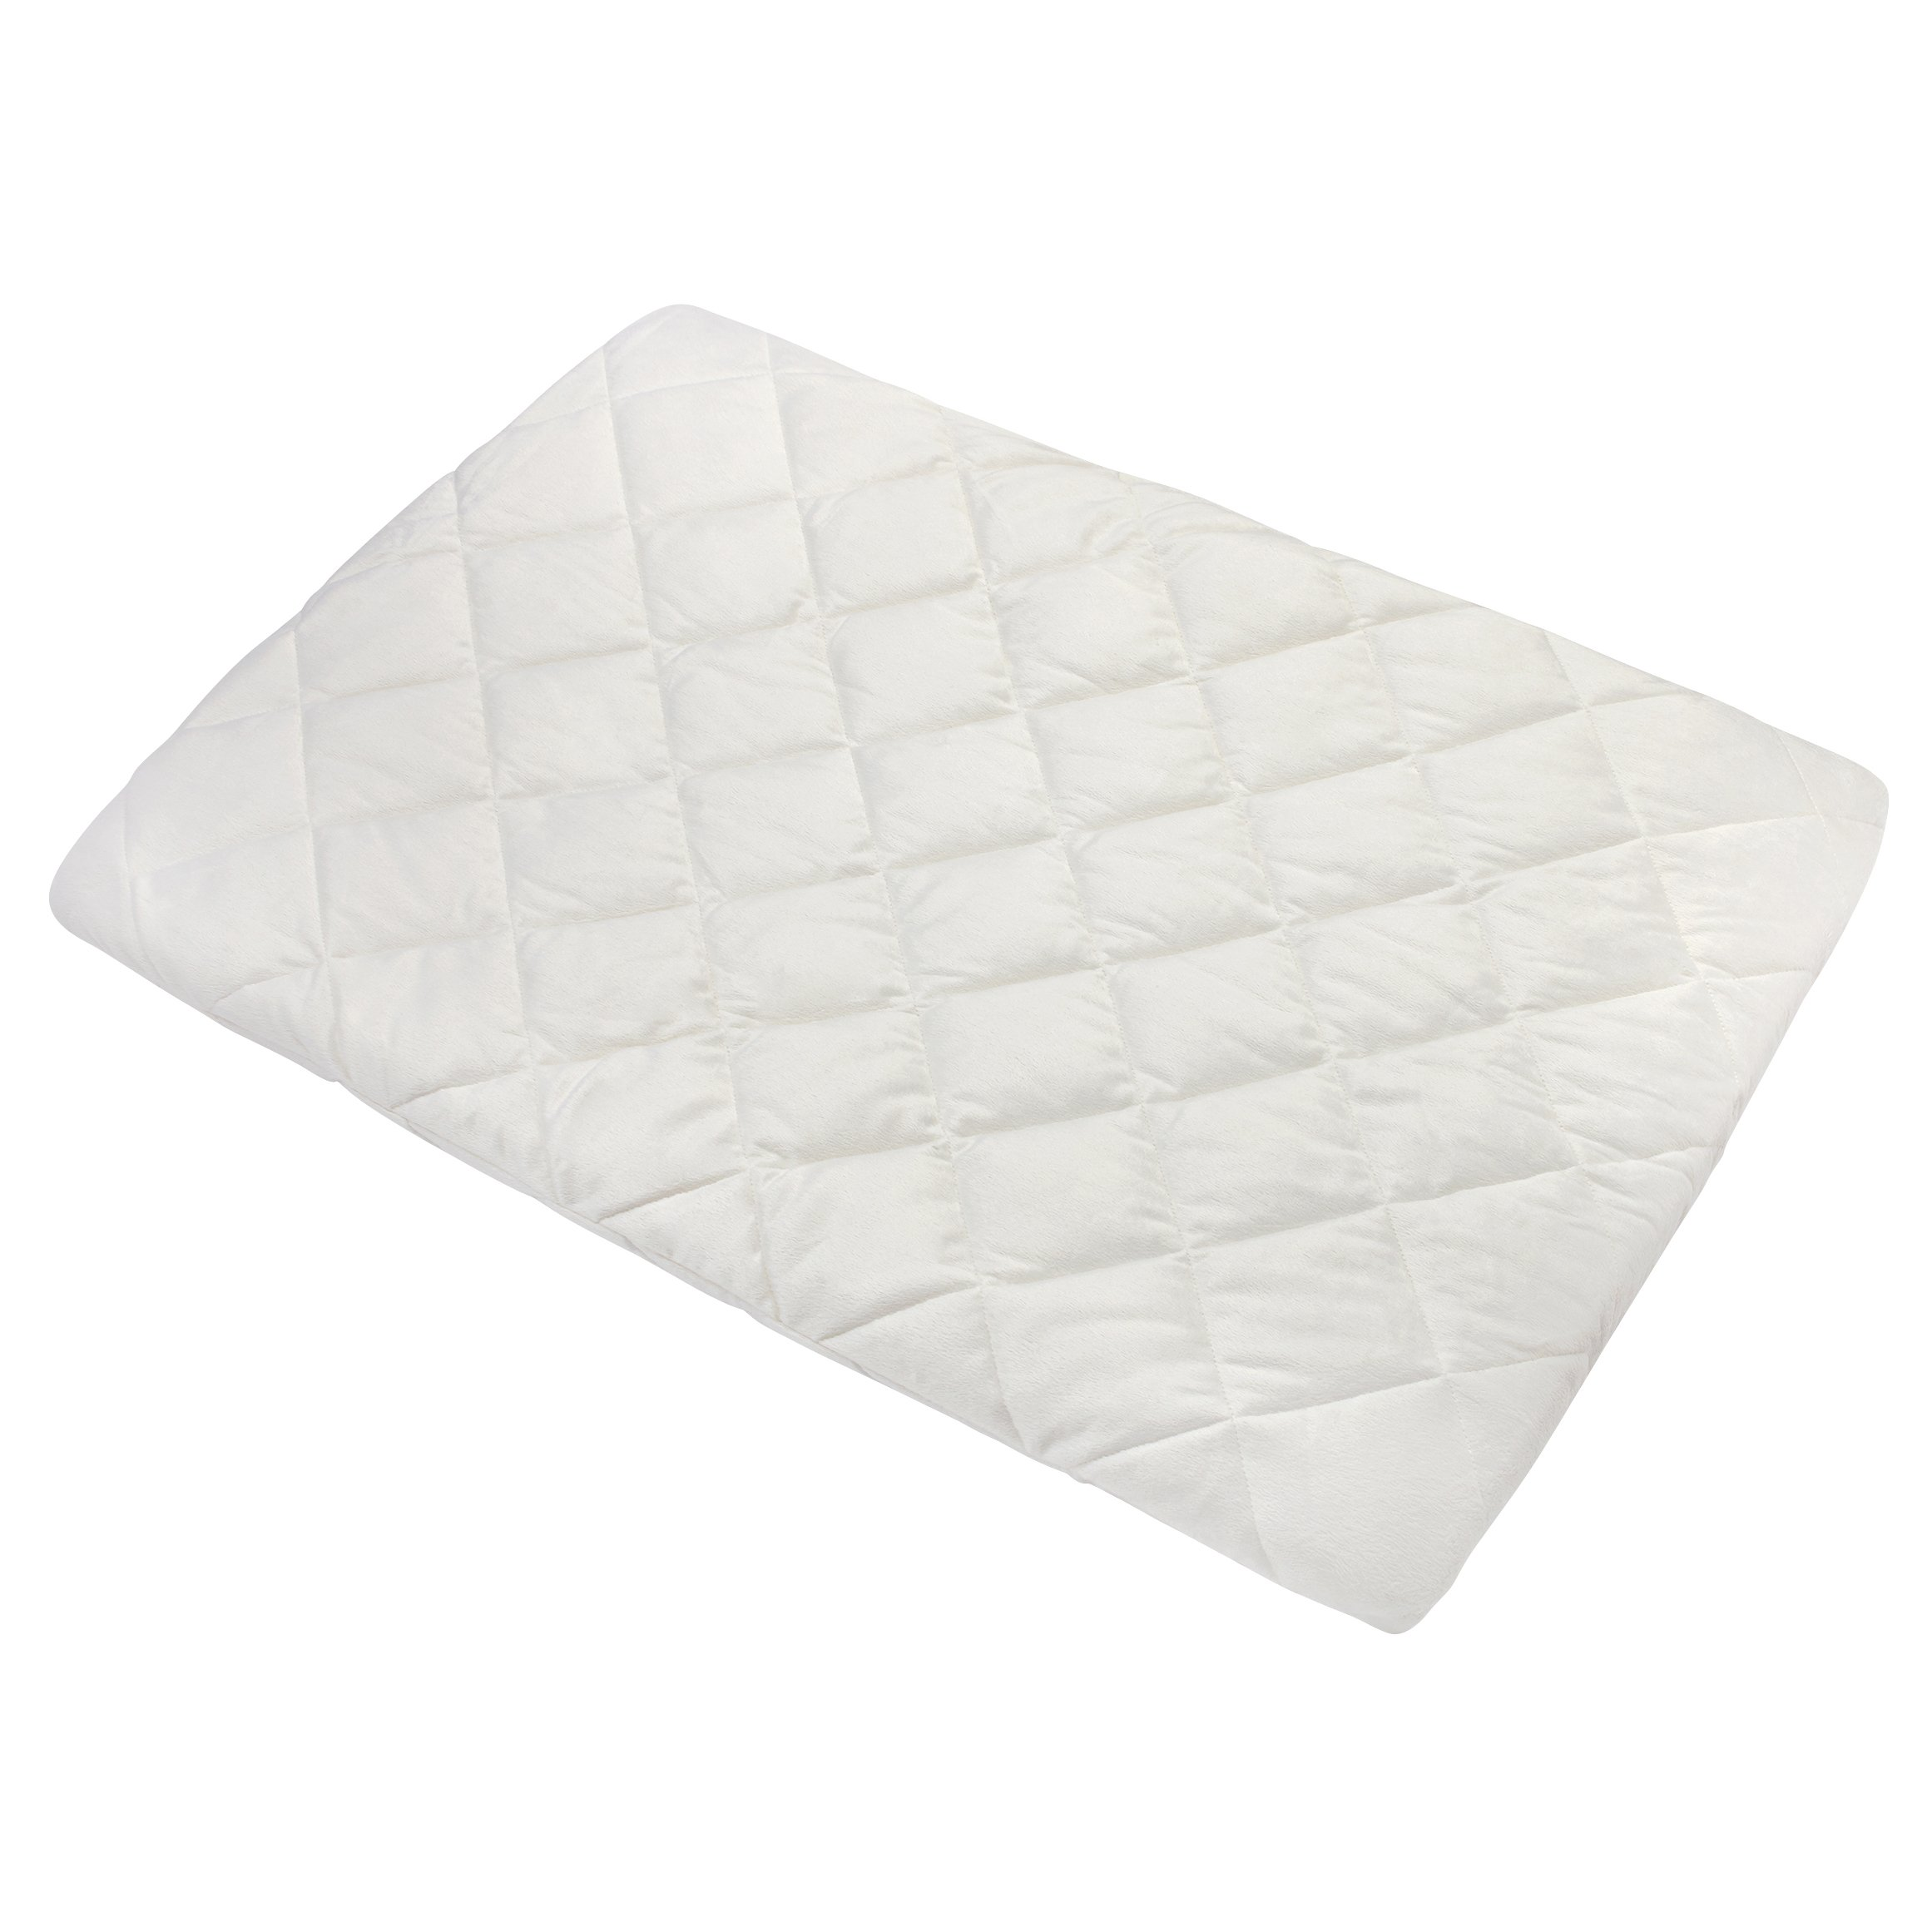 Carter's Quilted Playard Sheet, Solid Ecru, One Size